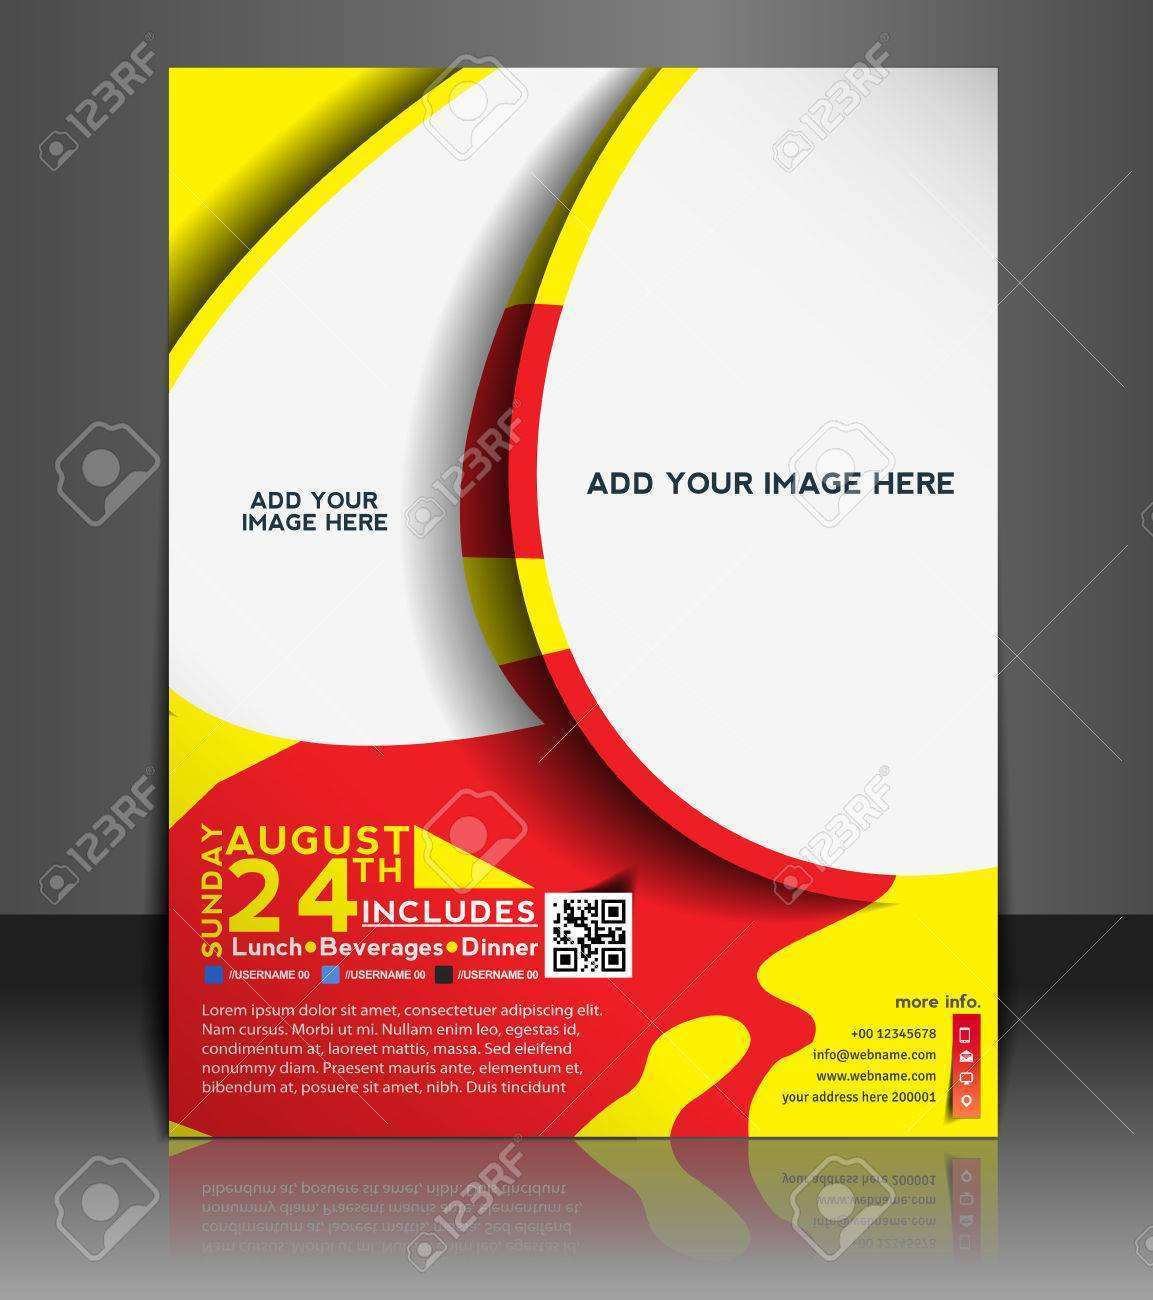 83 Visiting Competition Flyer Template Templates for Competition Flyer Template